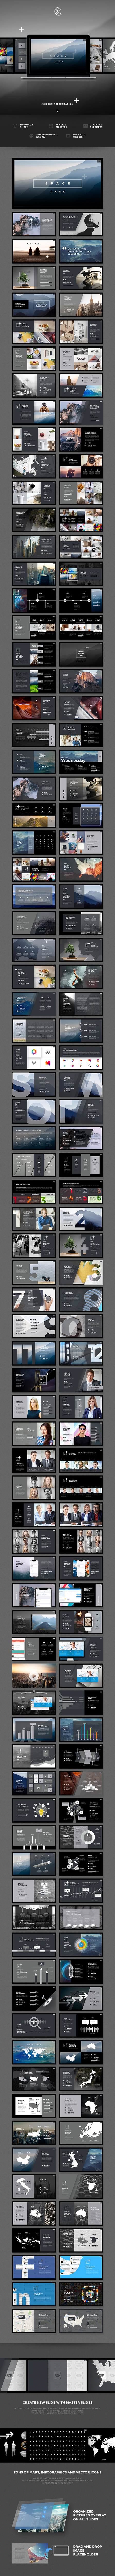 GraphicRiver Space Dark PowerPoint 21004003